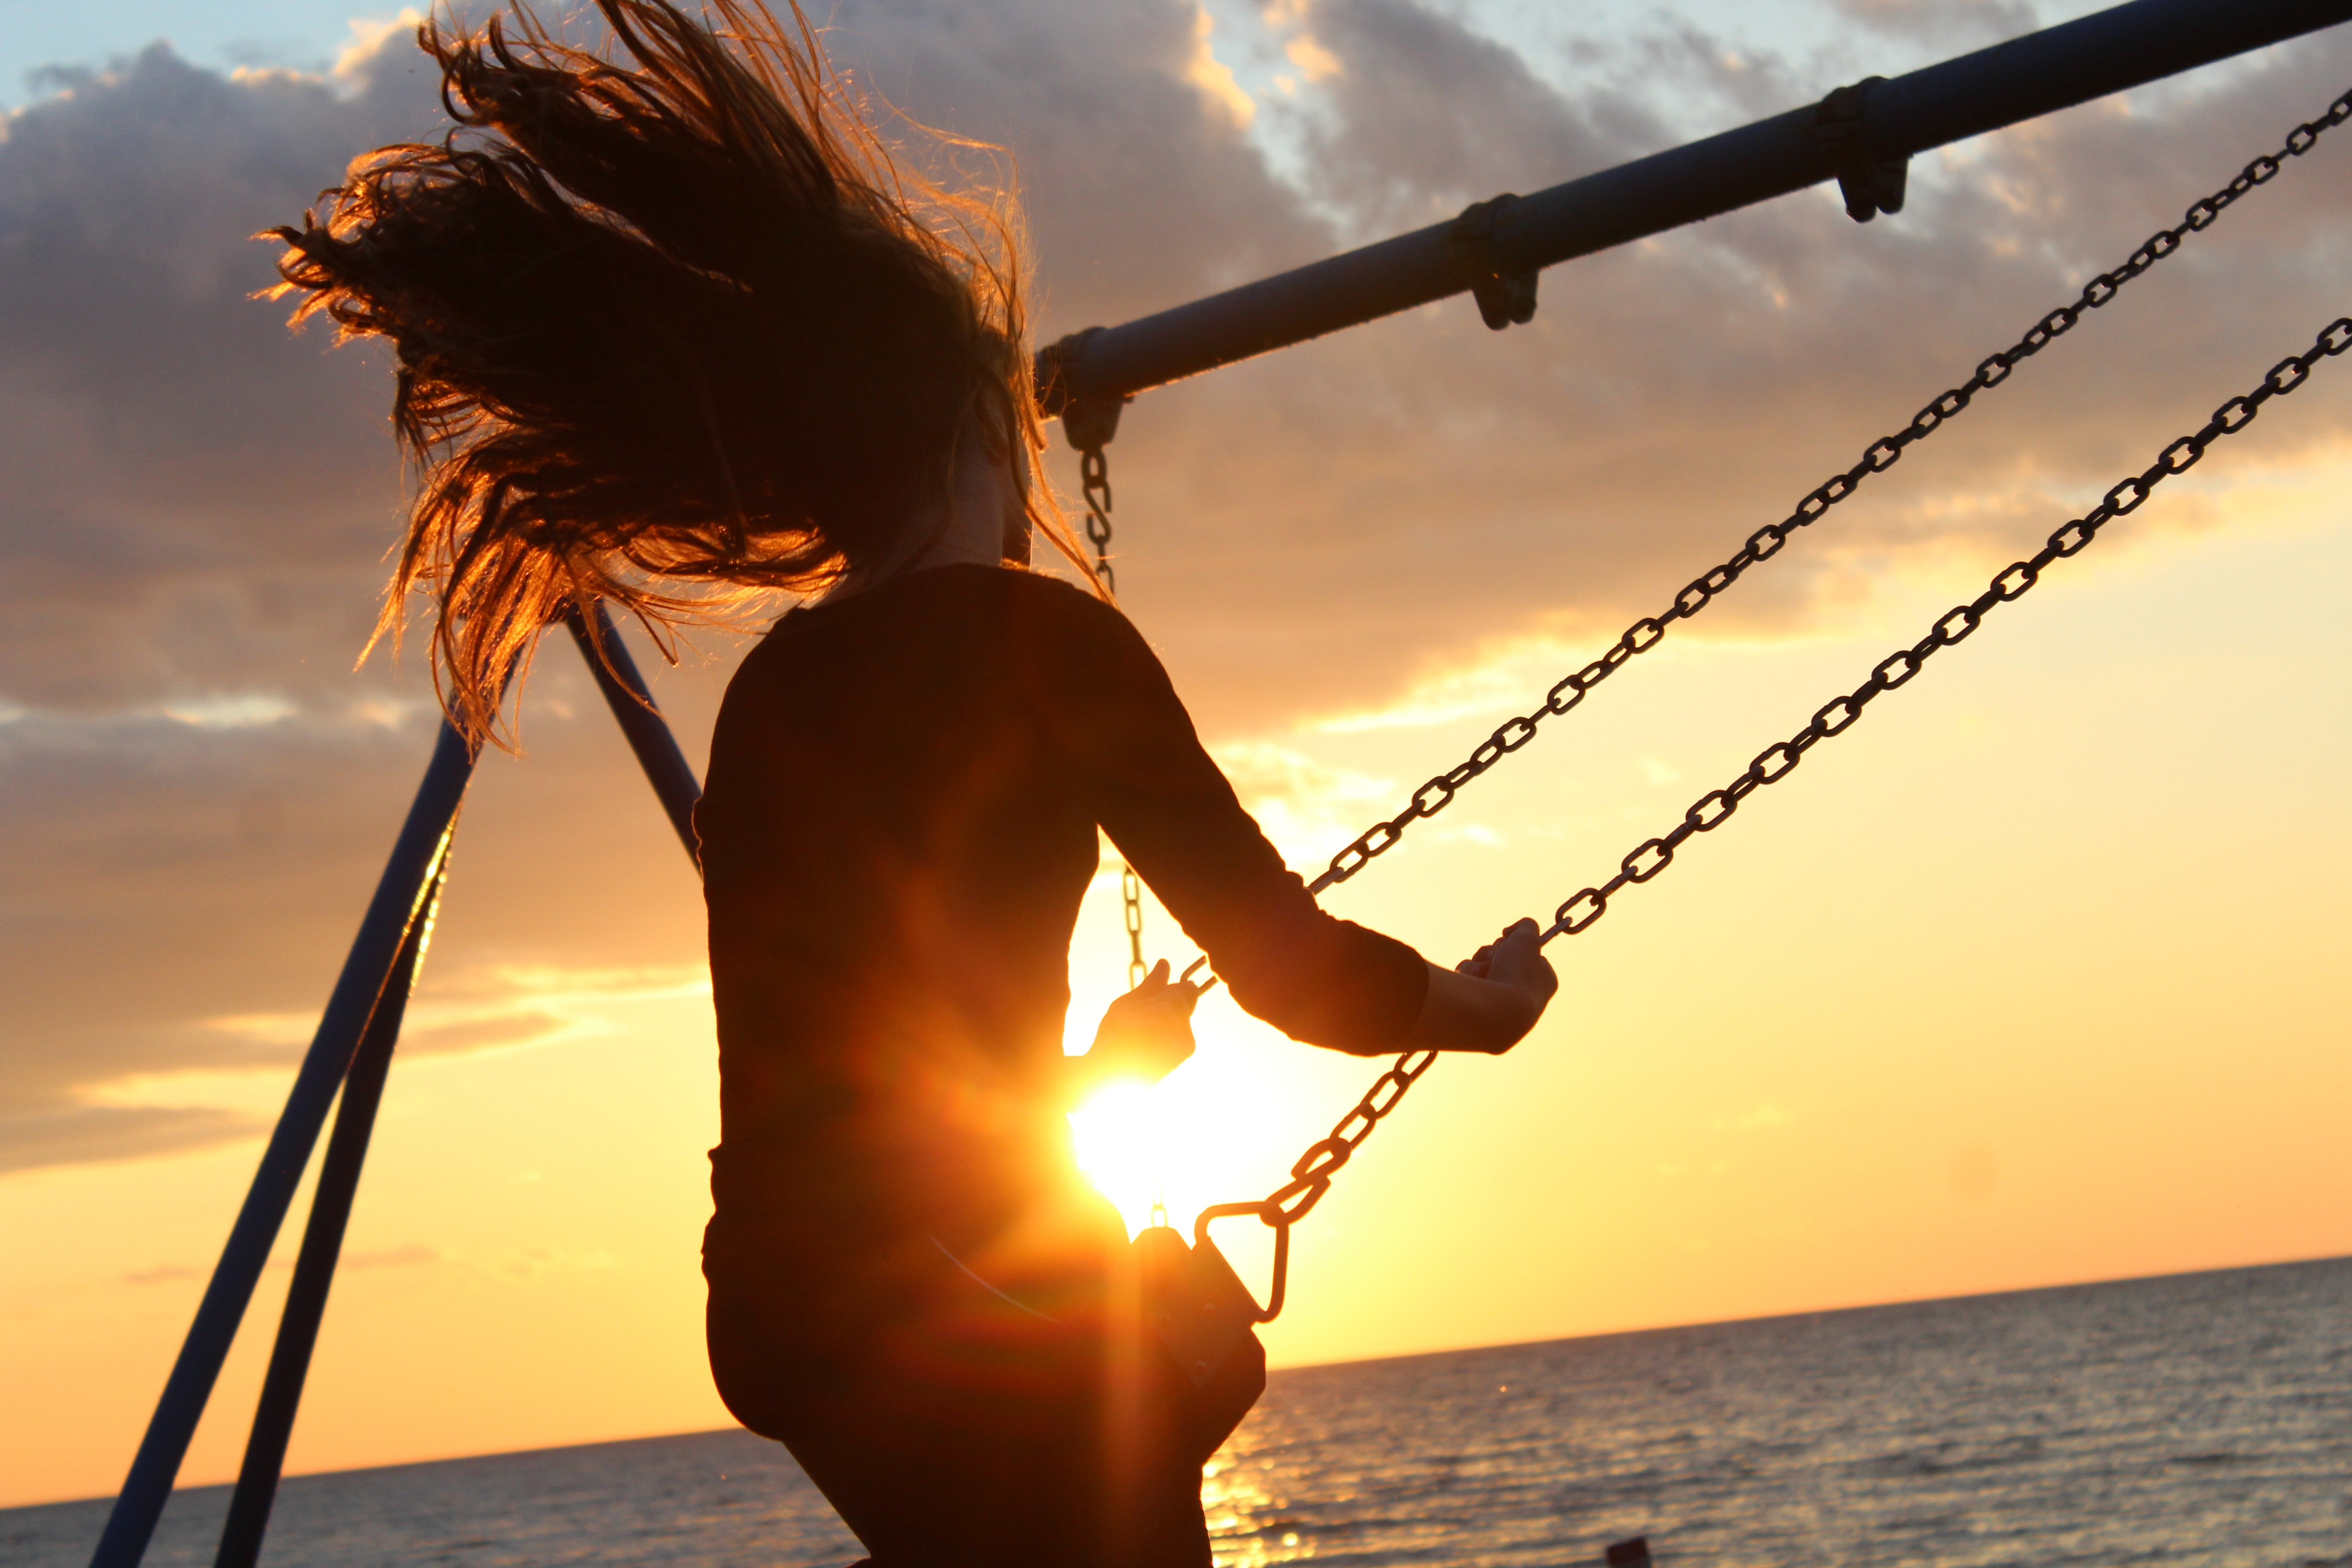 A woman with long hair swings high on a swing near the ocean at sunset.